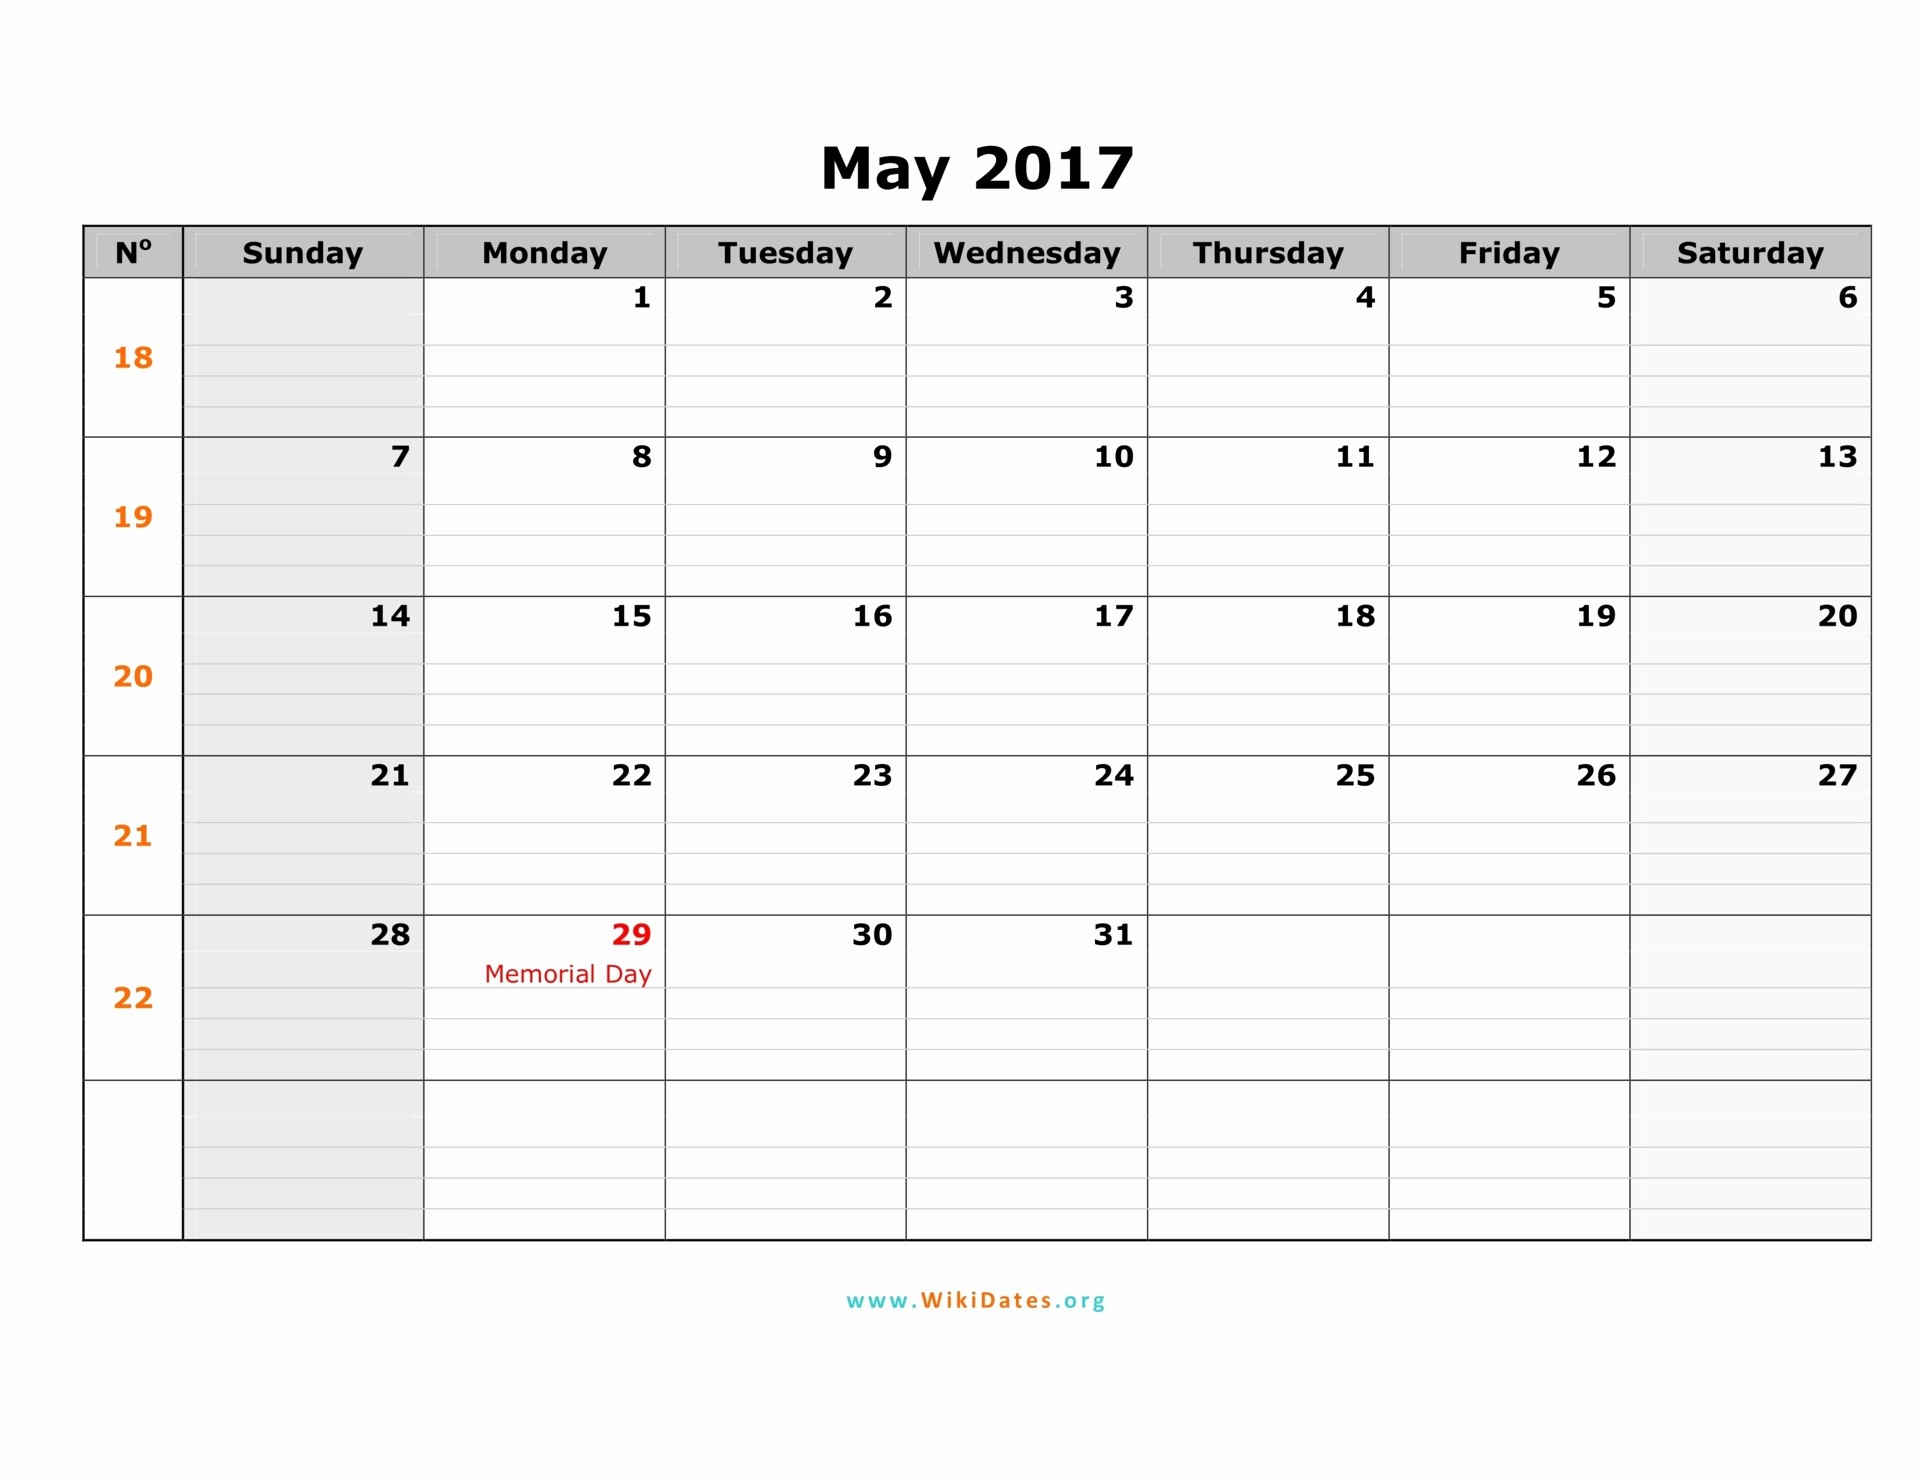 2017 Calendar with Holidays Template Best Of May 2017 Calendar Printable with Holidays